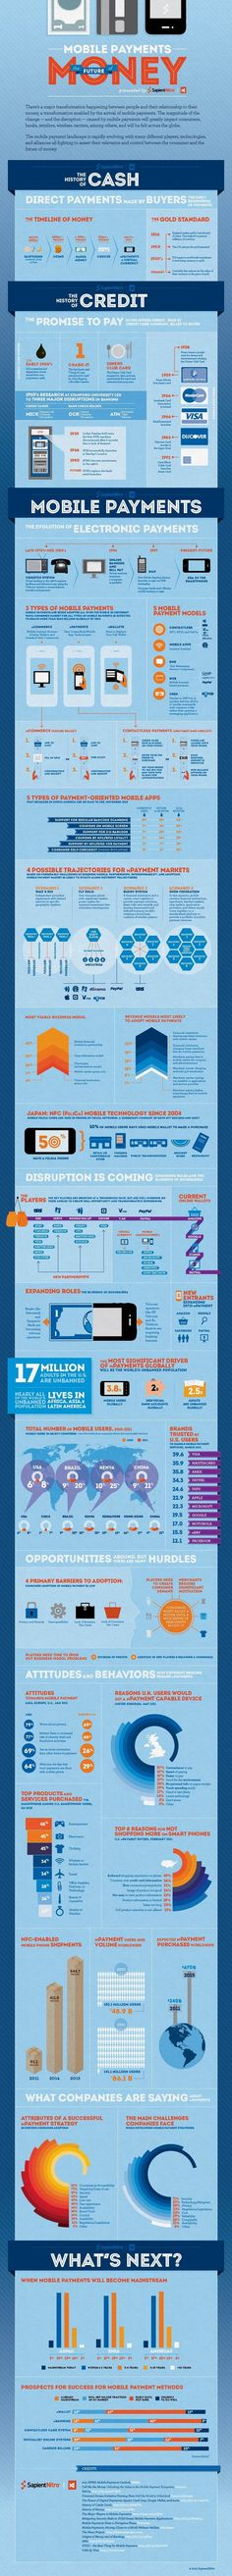 Mobile Payments: The Future of Money